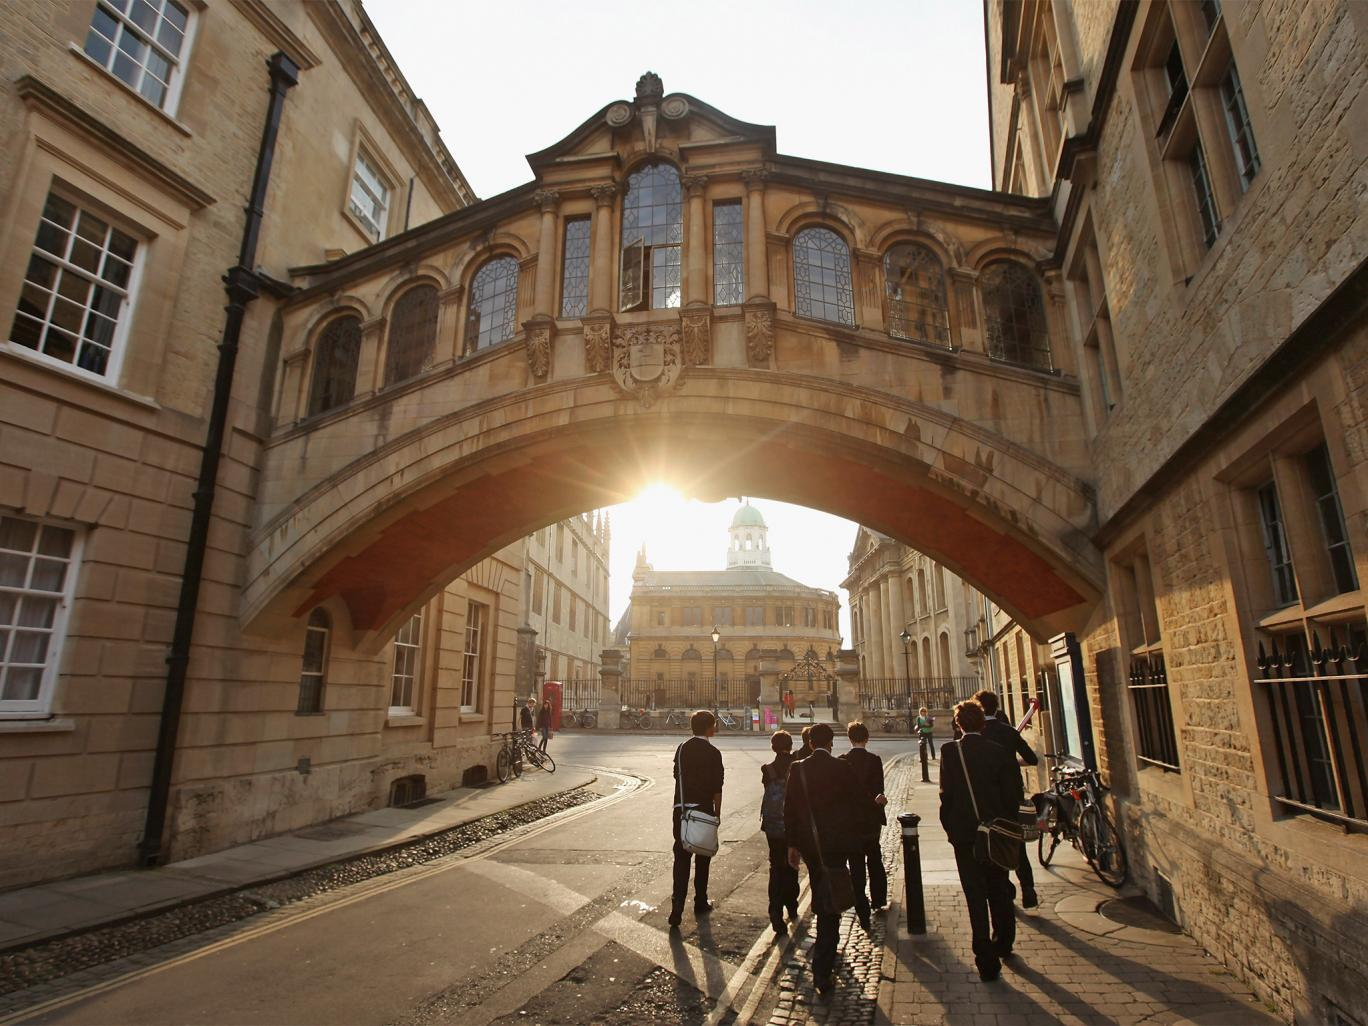 oxbridge colleges About new college our mission is to provide dynamic, high quality learning experiences in a supportive, inclusive environment, enabling academic success and personal growth.